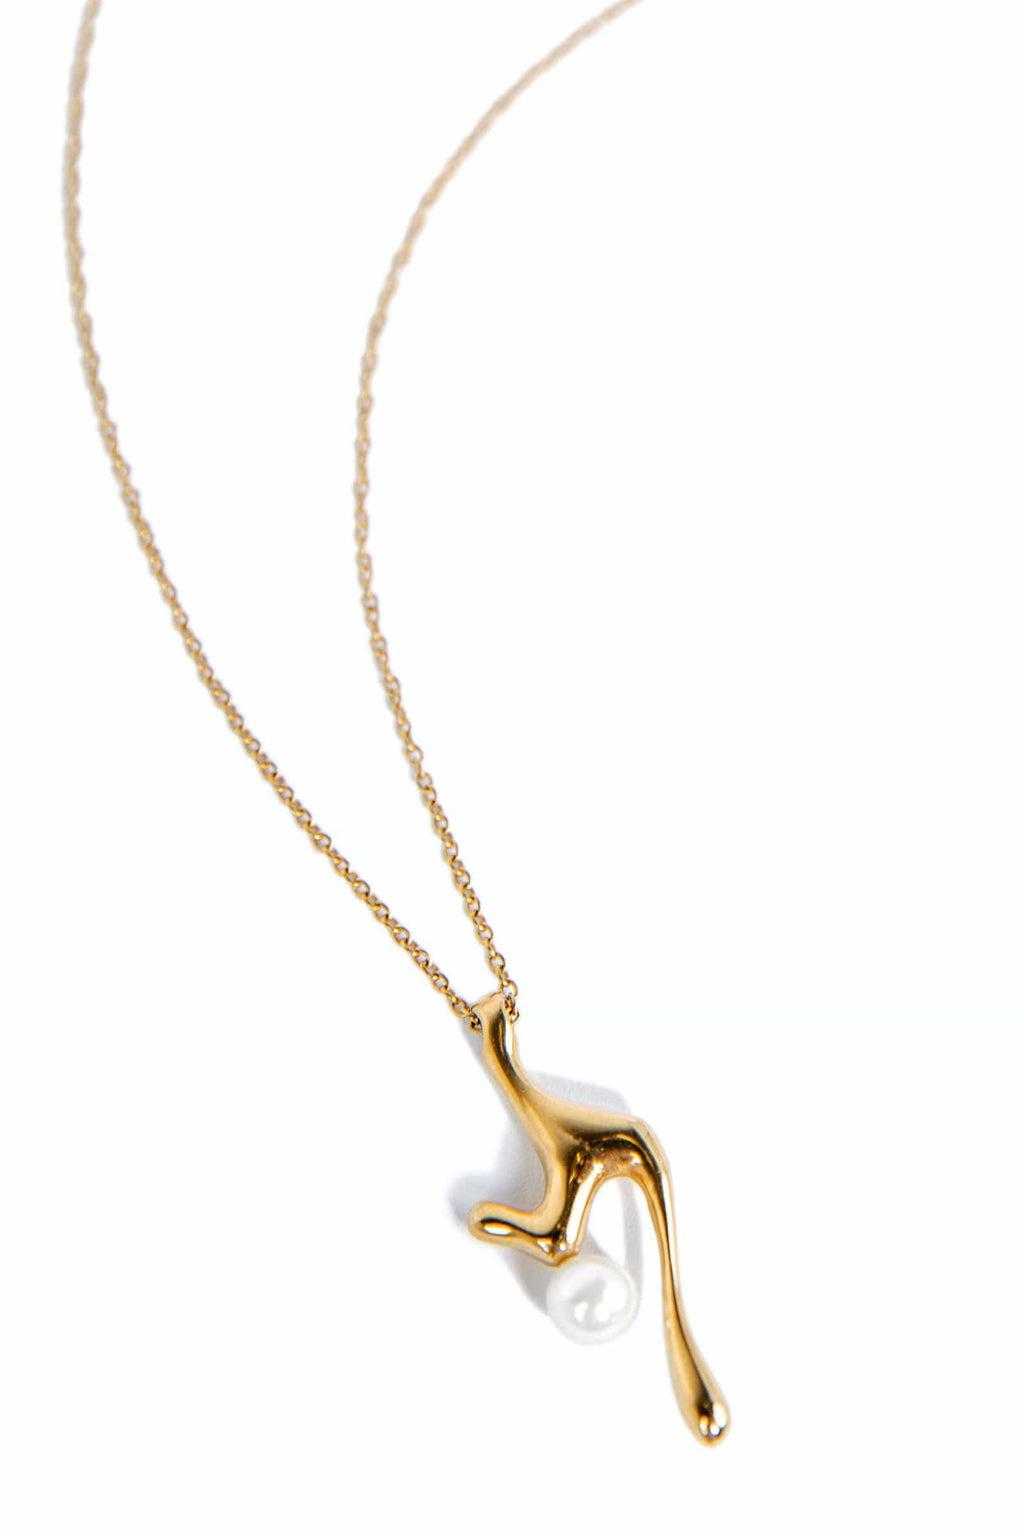 Antler Necklace by J.ING women's accessories